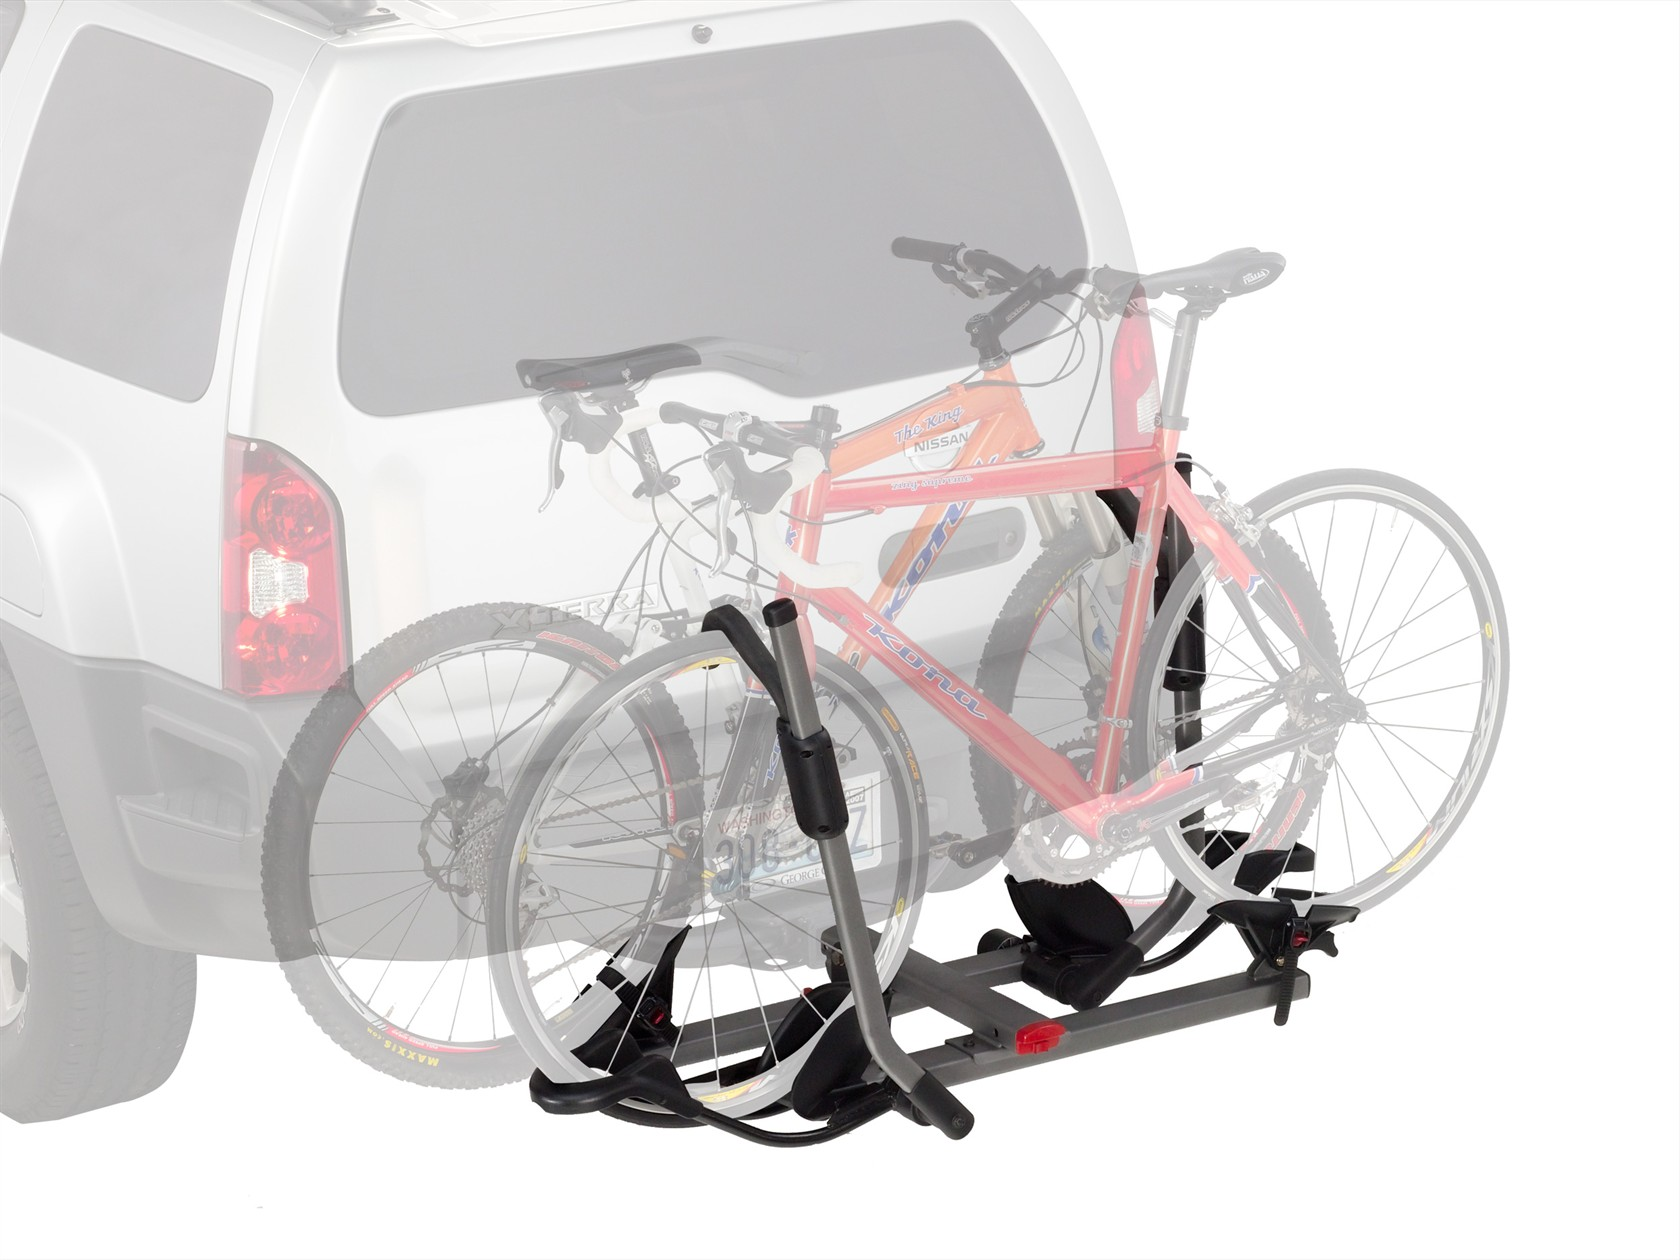 Yakima 8002433 HoldUp Bike Rack 2 inch only